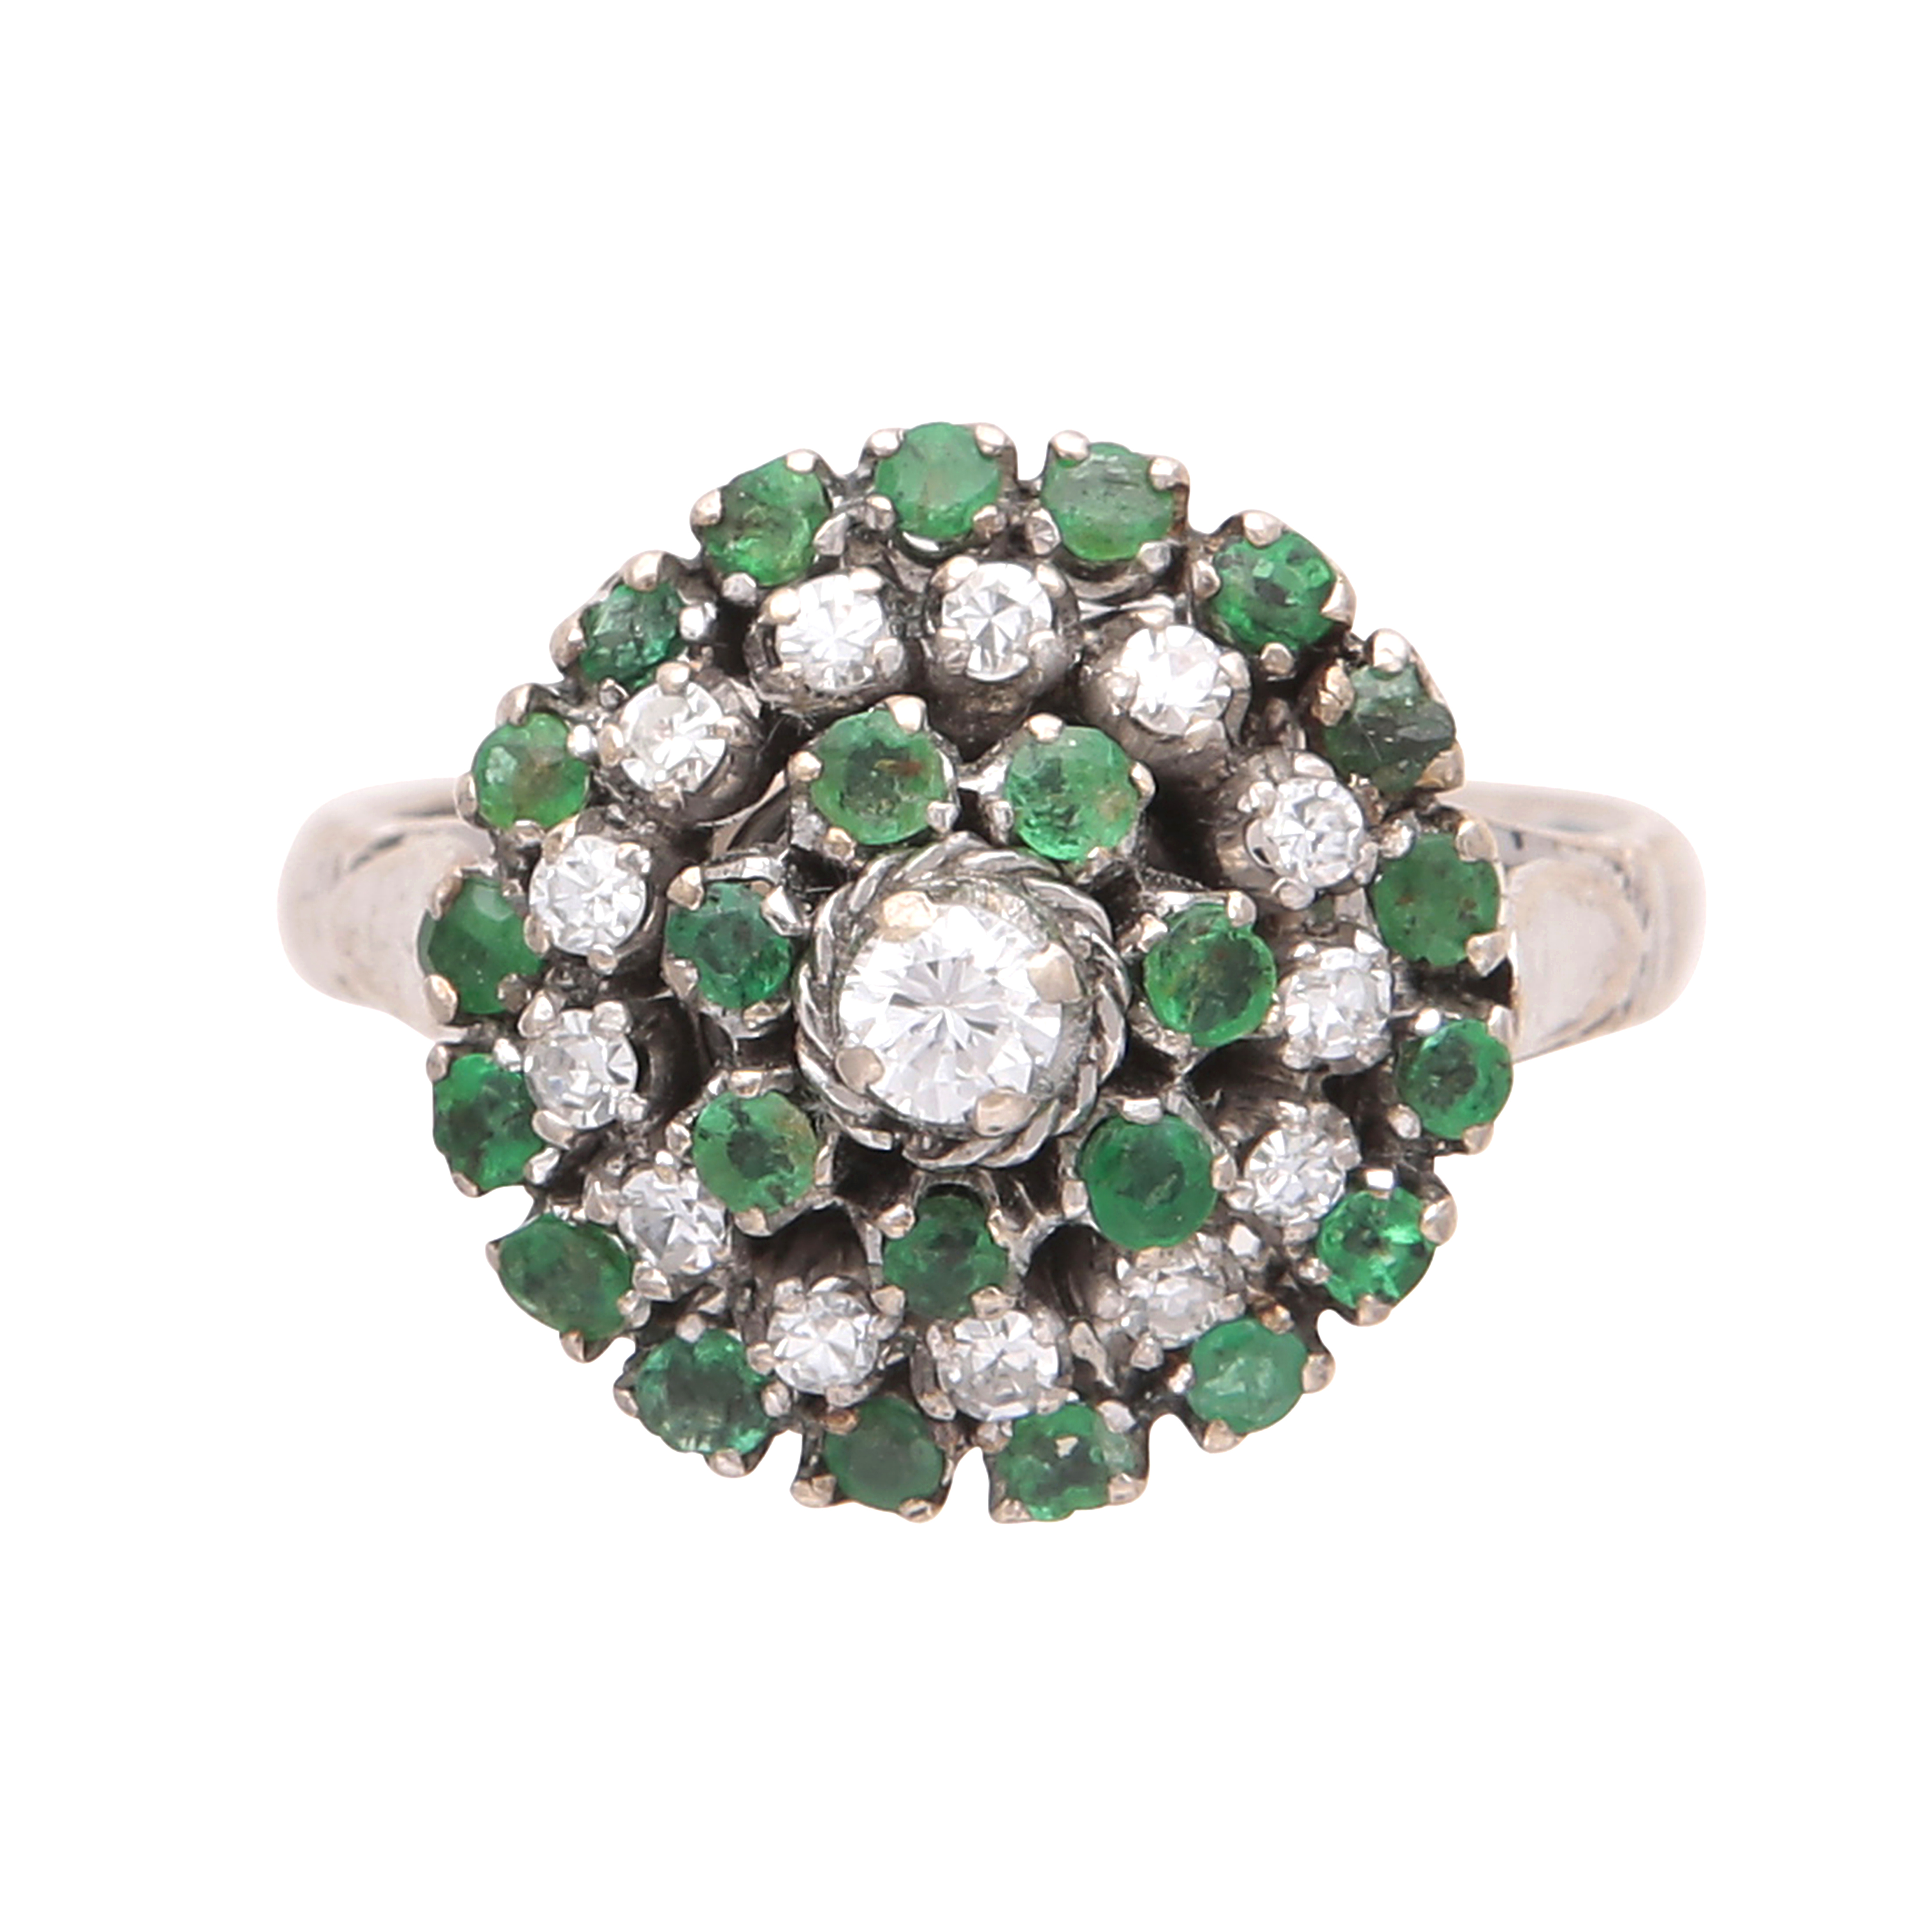 An emerald and diamond cluster ring in yellow gold, designed as a central round cut diamond